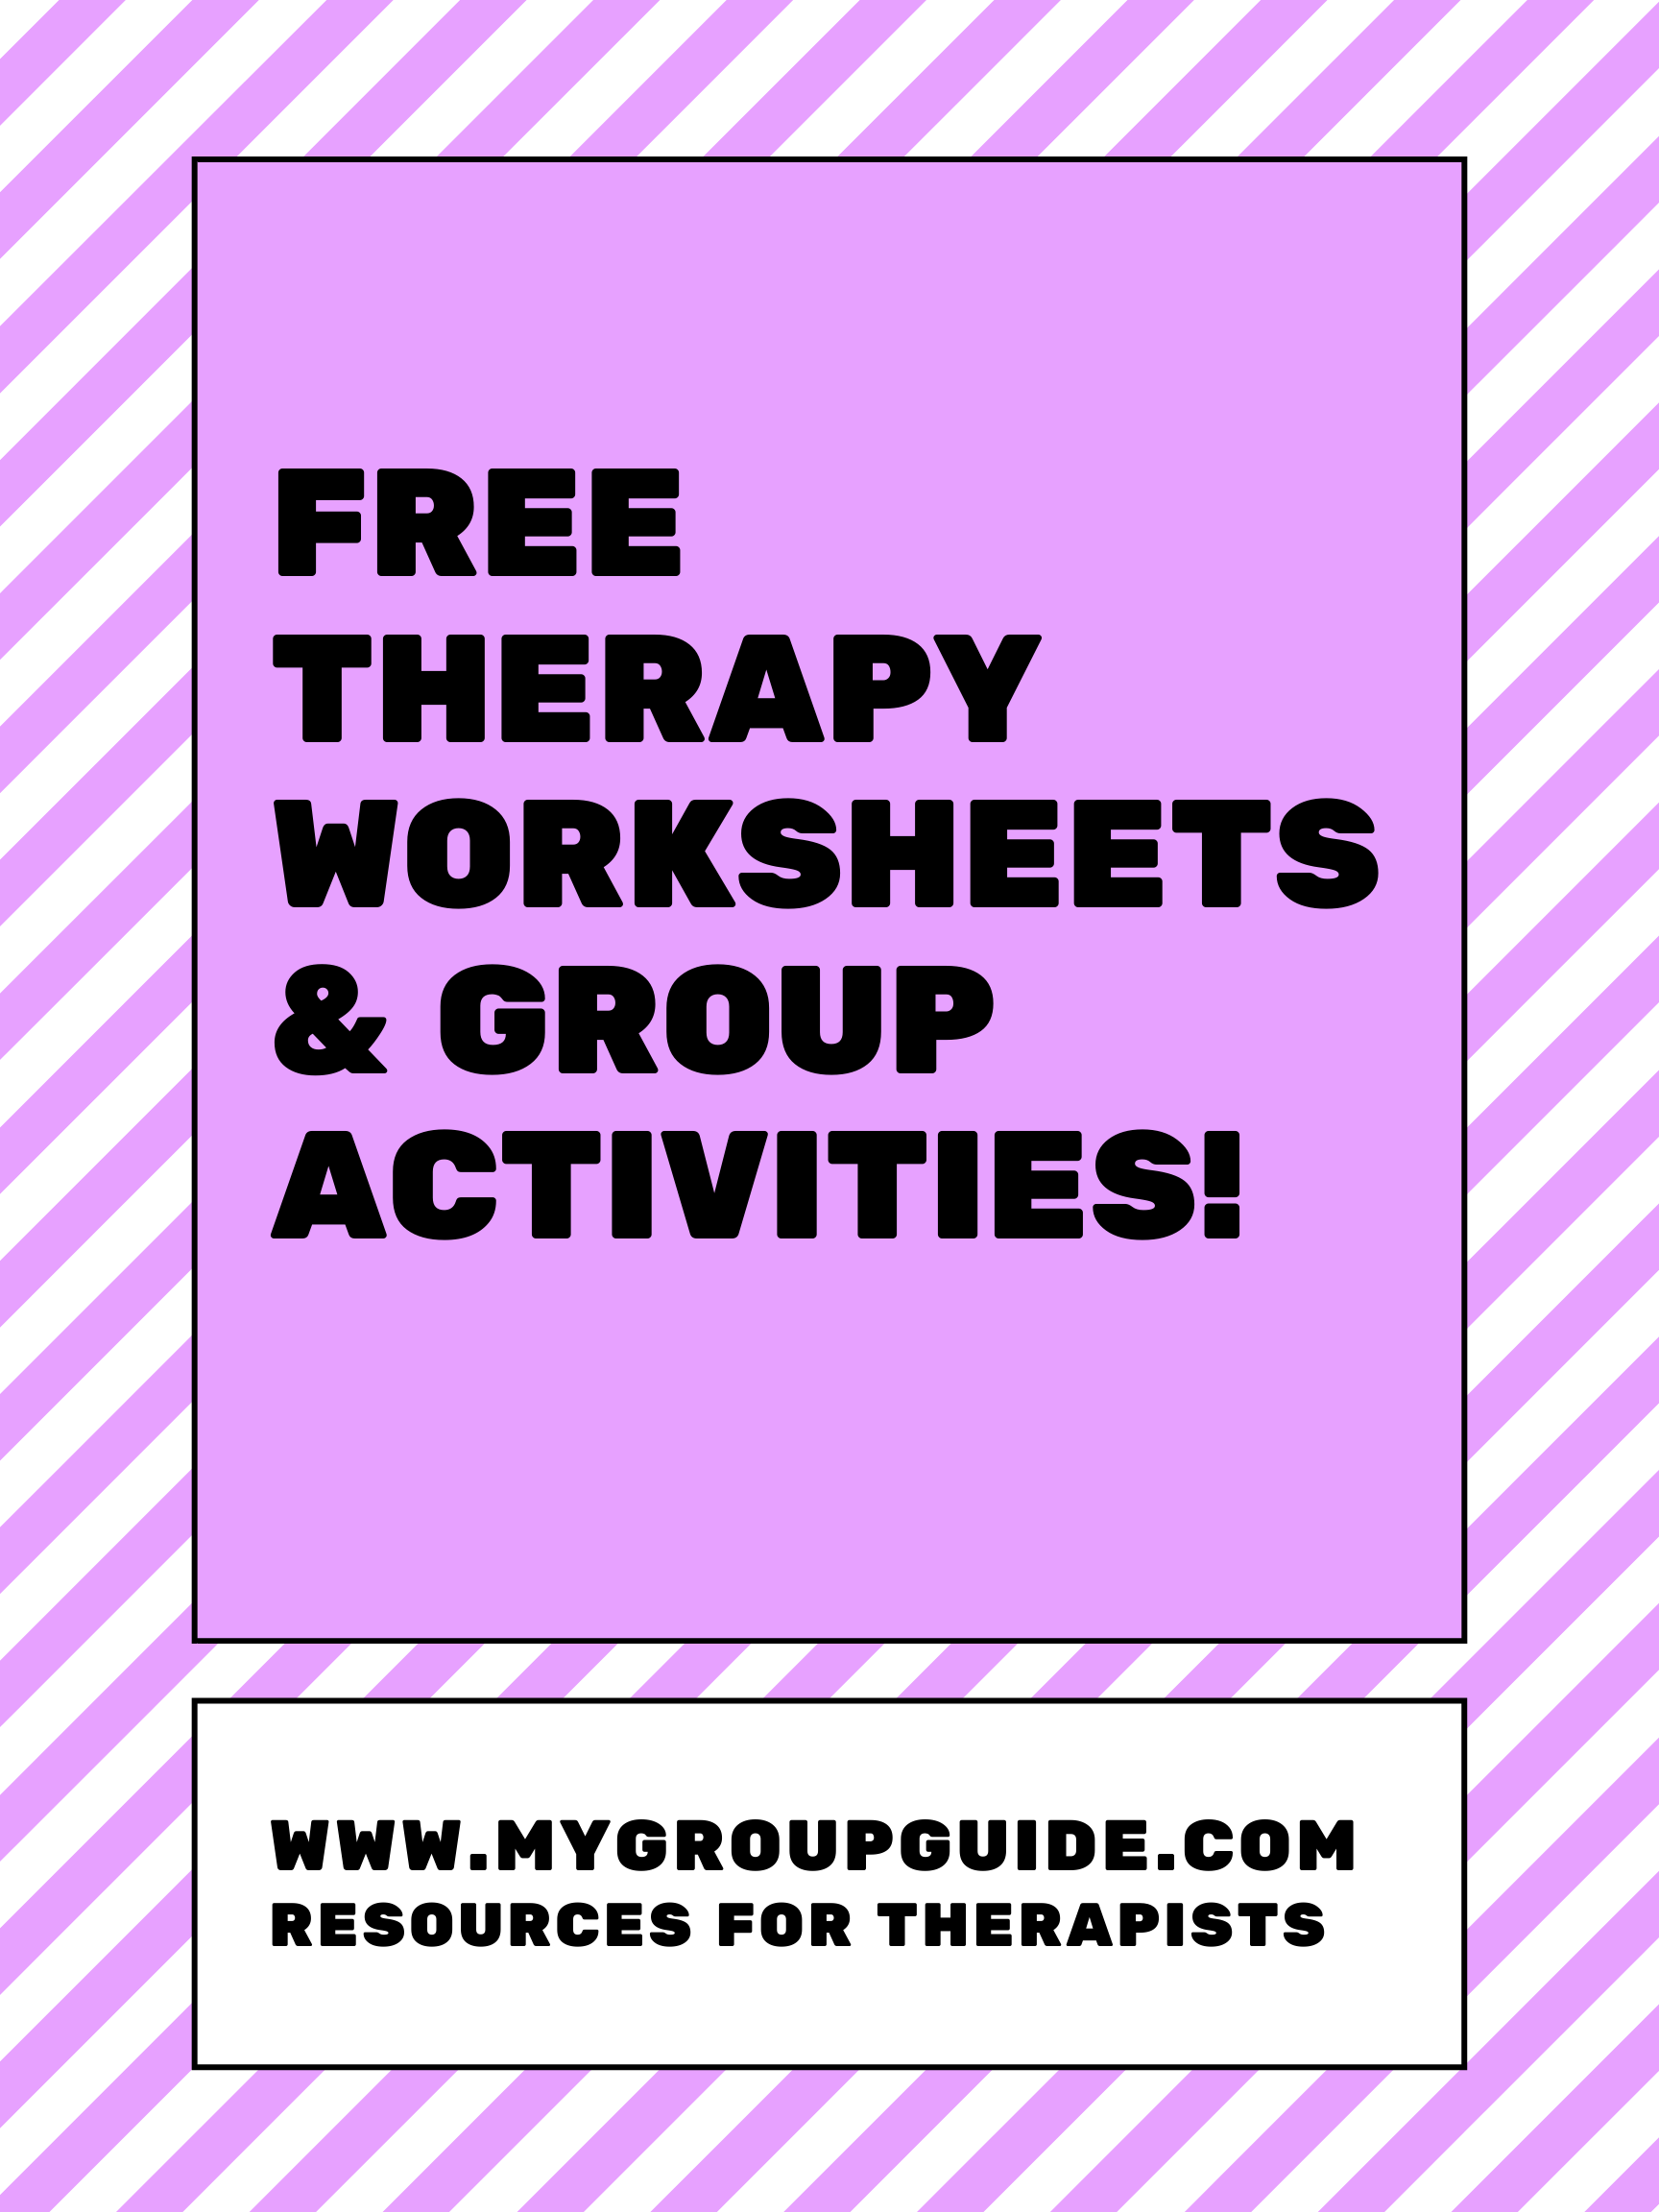 Learn More About Our Therapy Resources In